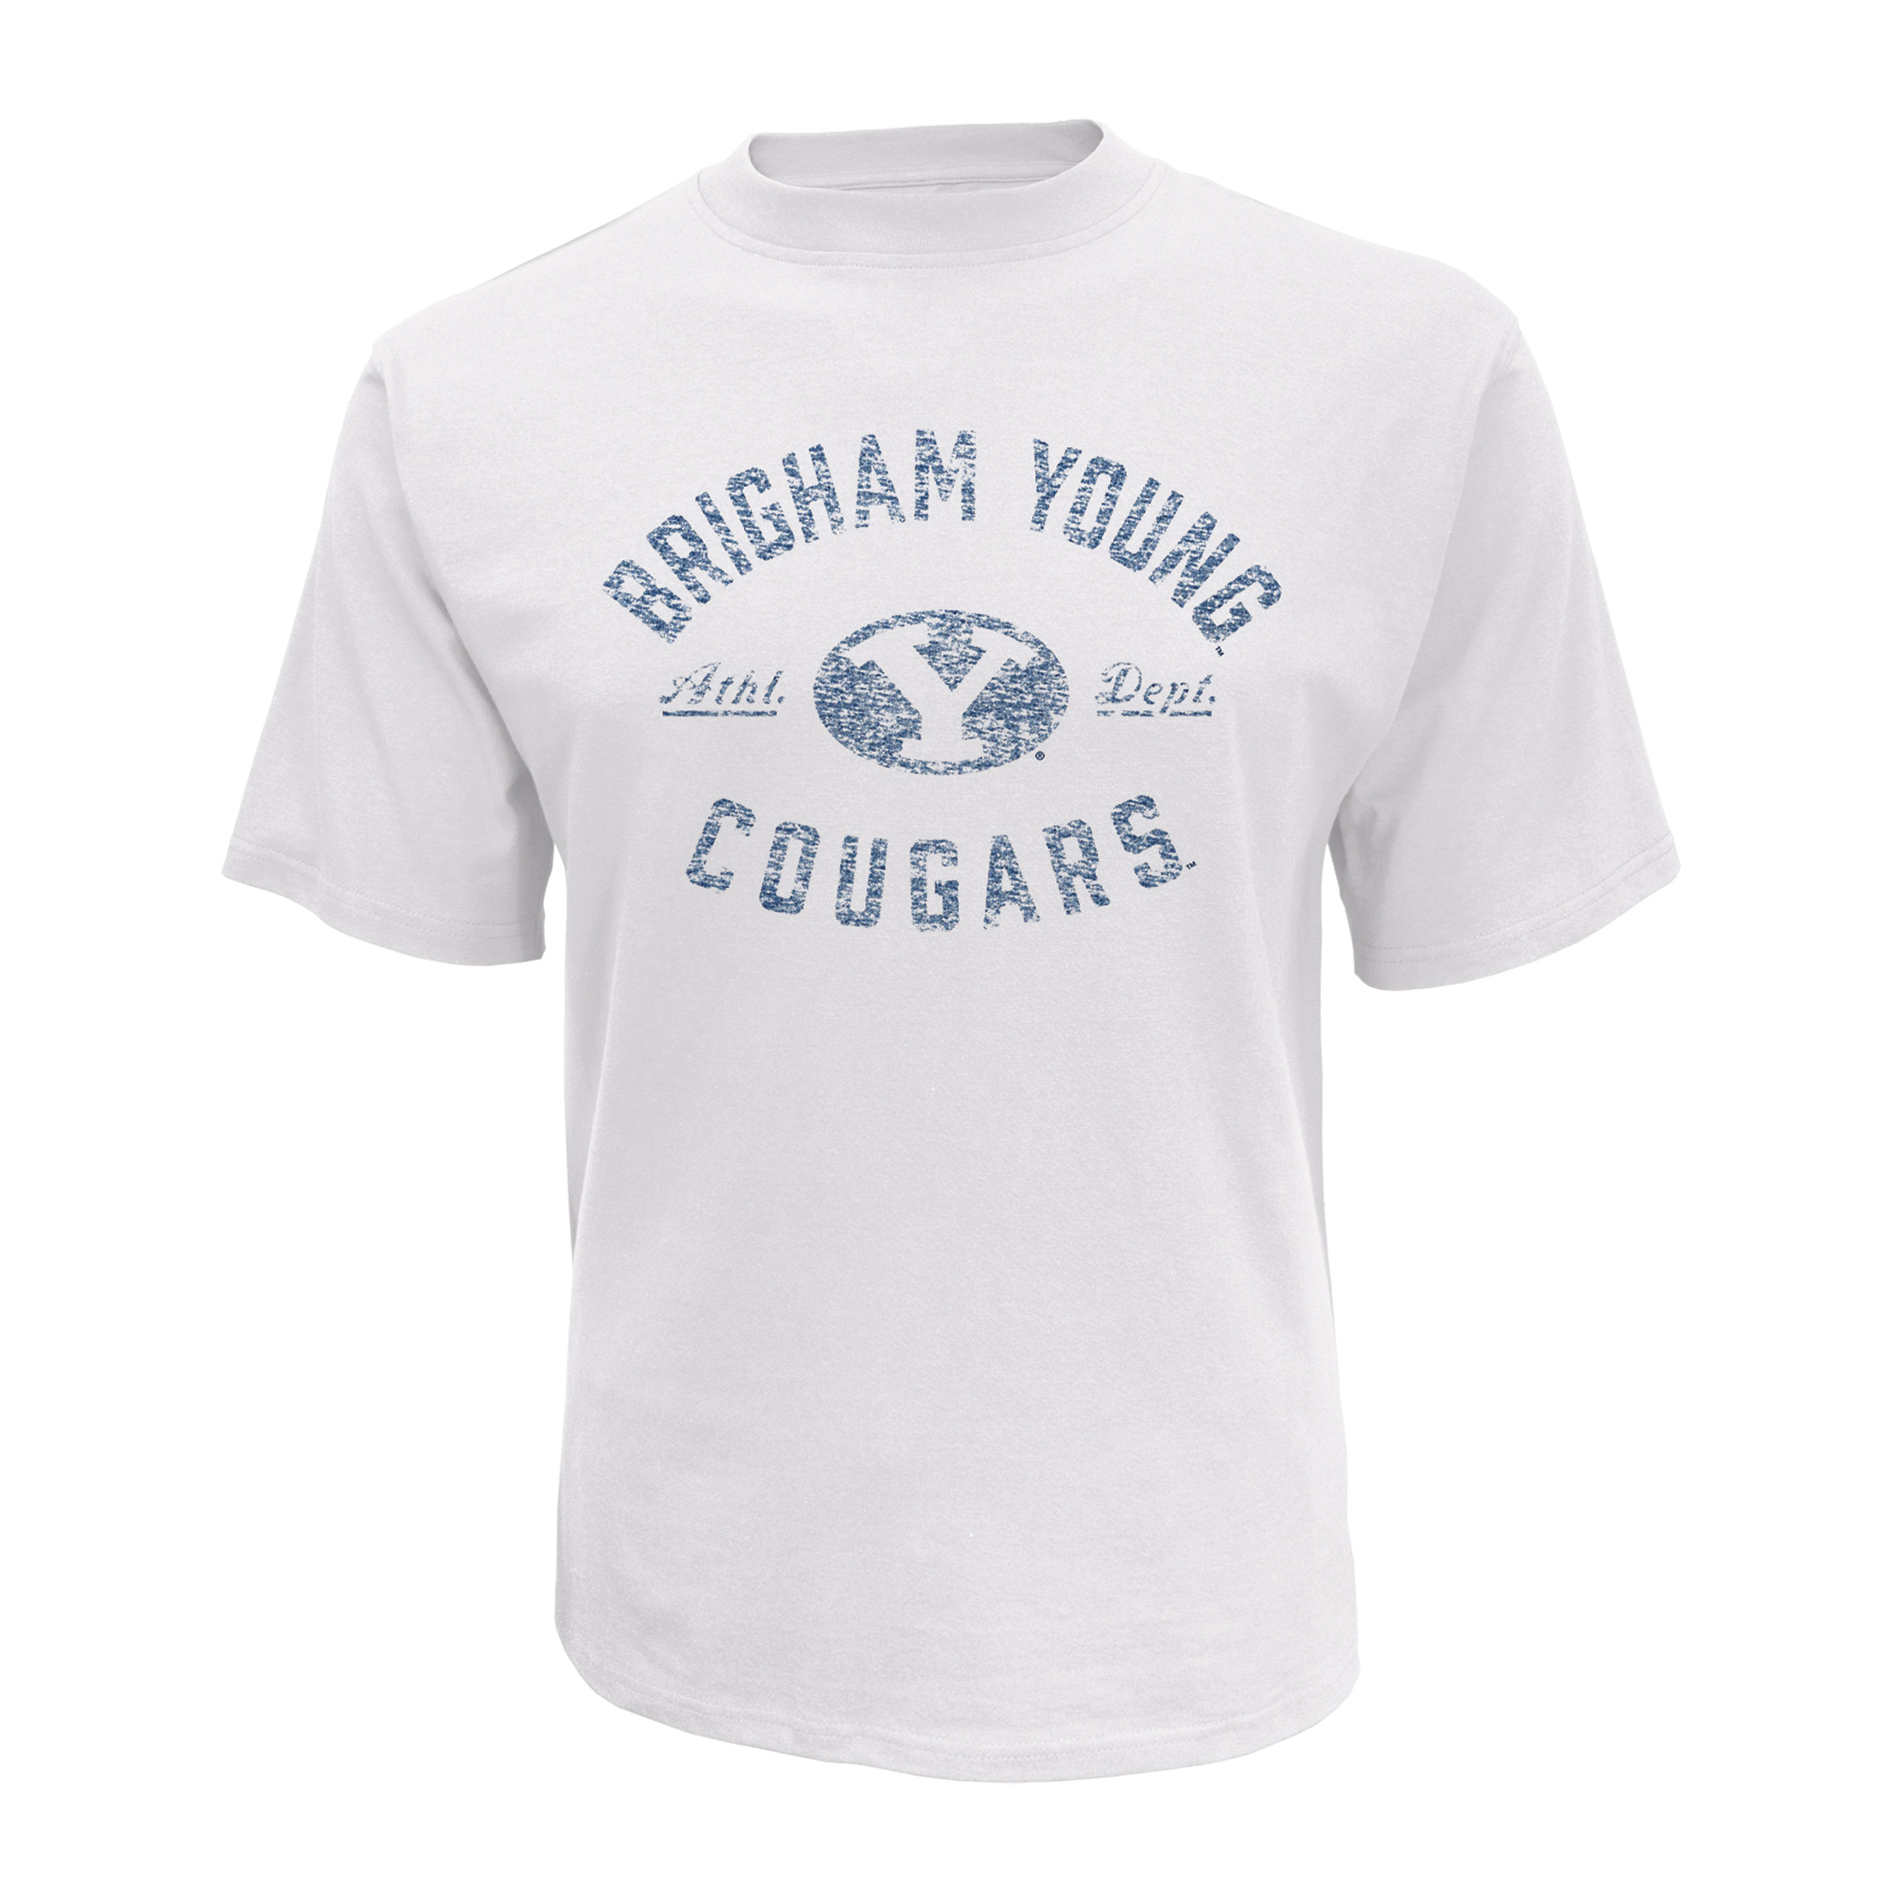 petite NCAA Men's Big & Tall Short-Sleeve T-Shirt - BYU Cougars, Size: 4XL